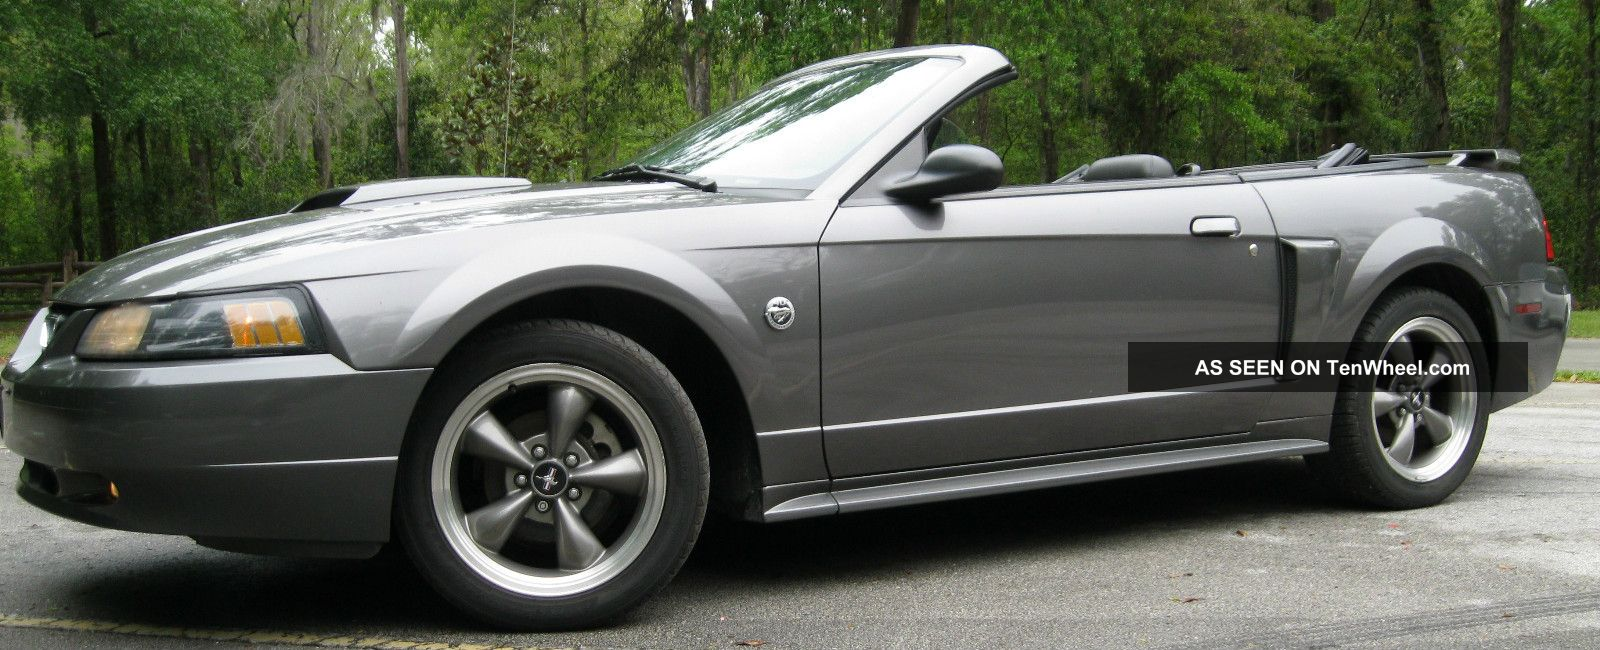 2004 ford mustang gt convertible 2 door 4 6l. Black Bedroom Furniture Sets. Home Design Ideas